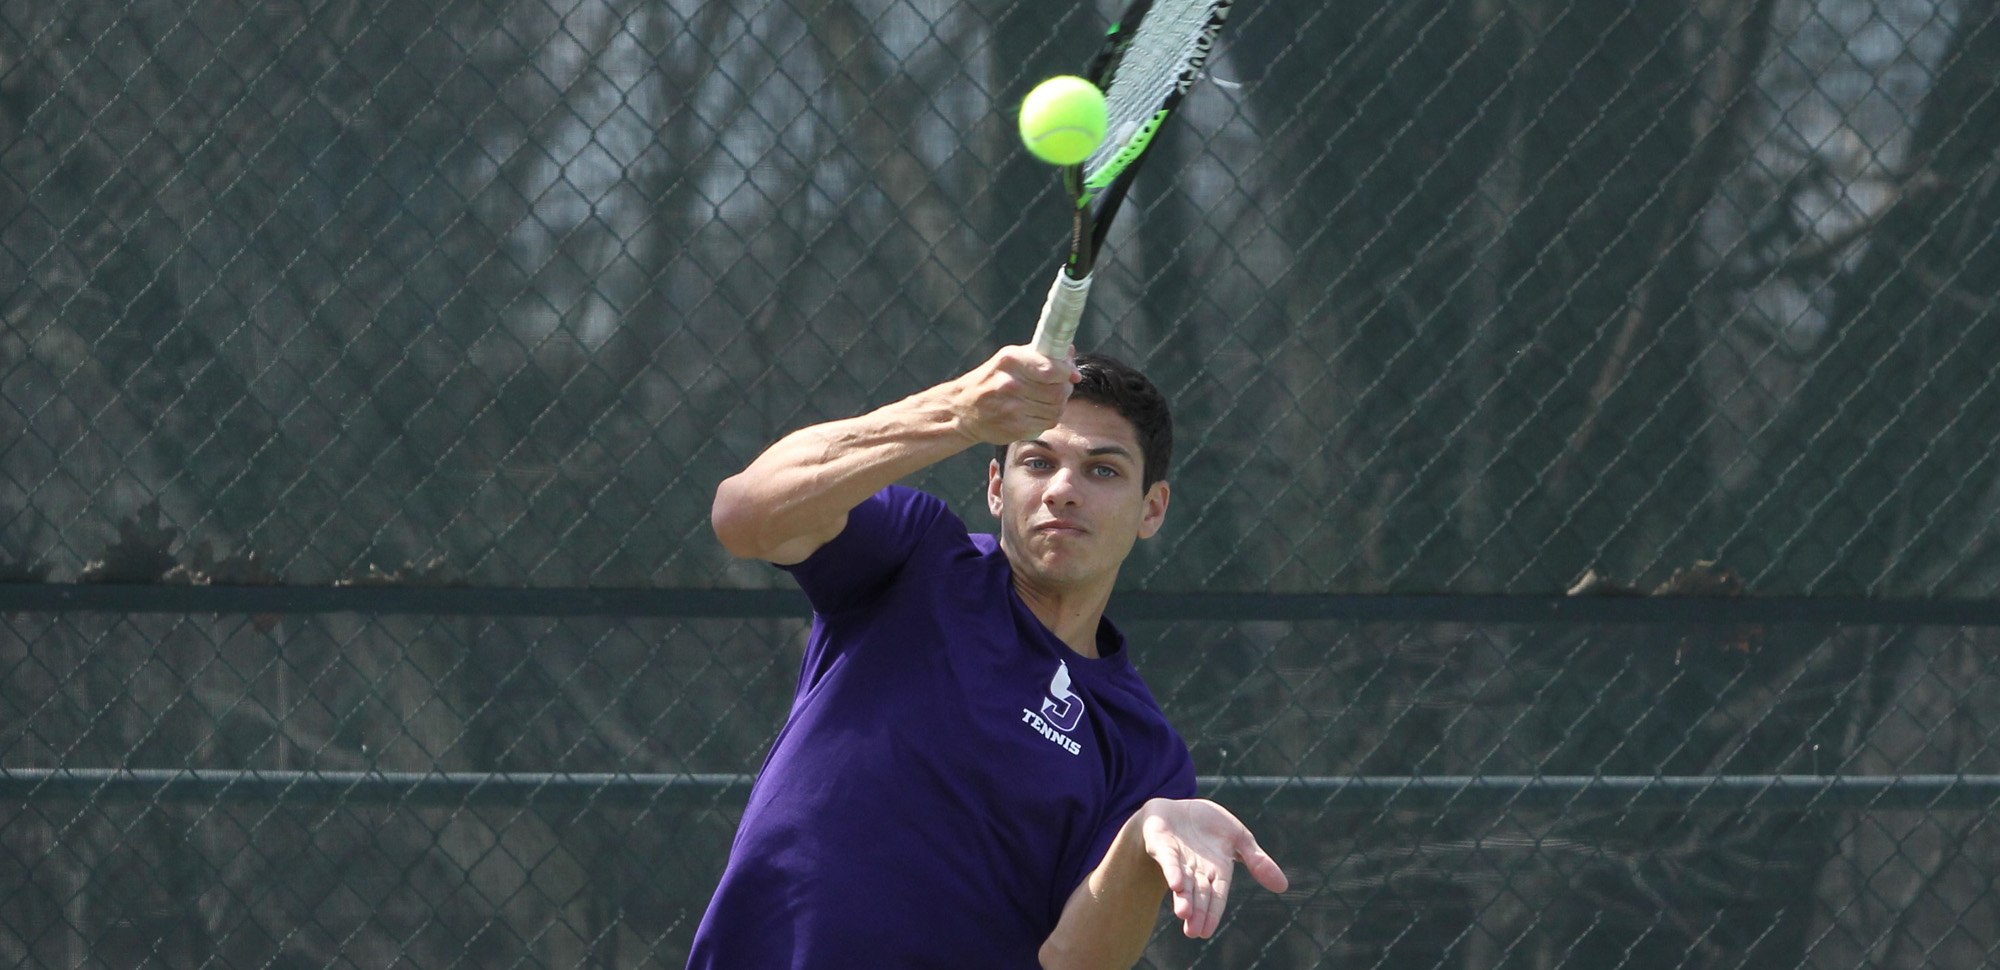 Senior Charles Swope won a pair of matches on Sunday as Scranton sent Juniata to its first loss of the season at the Royal Courts. © Photo by Timothy R. Dougherty / doubleeaglephotography.com